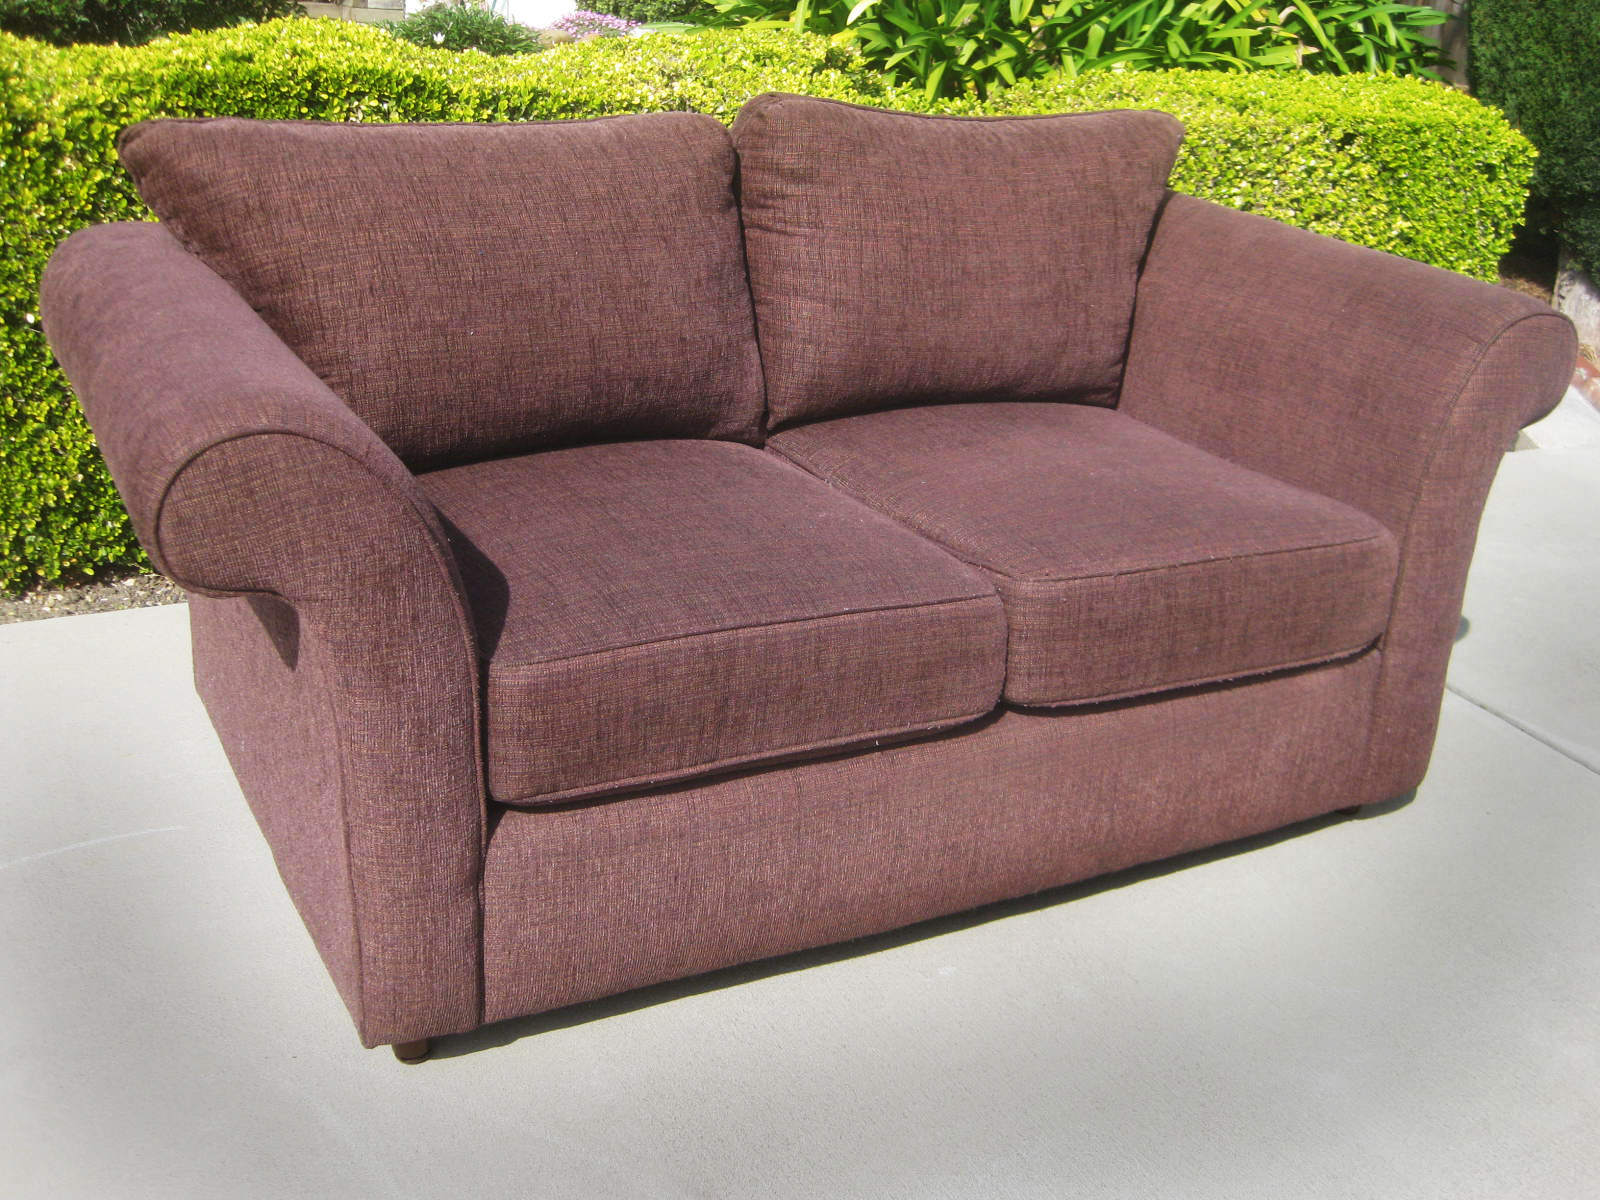 Uhuru Furniture Collectibles Sold Purple Loveseat 120